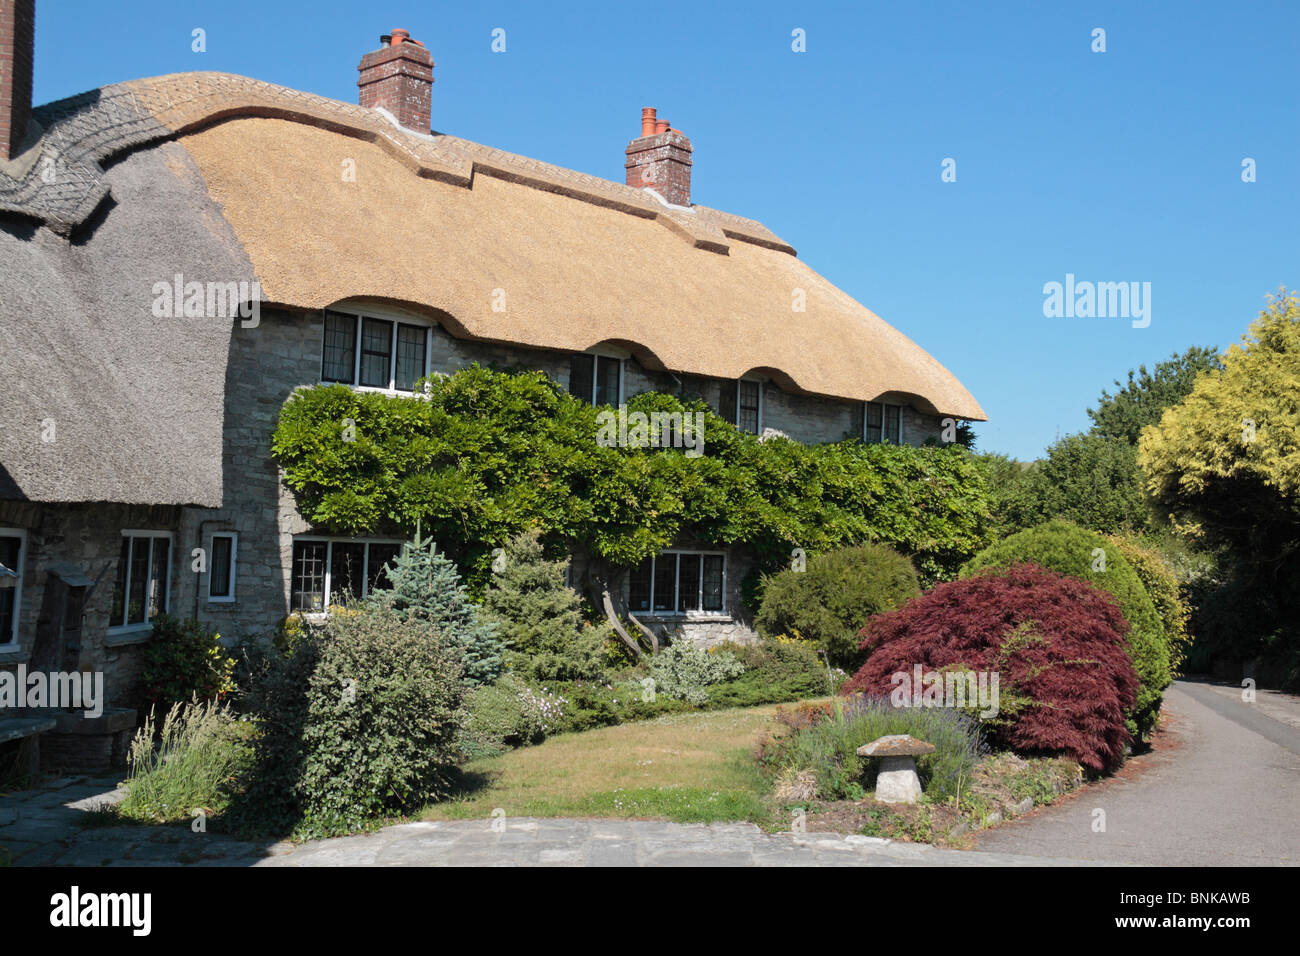 A pretty thatched cottage and garden in the pretty English village of Corfe Castle, Dorset, UK. - Stock Image